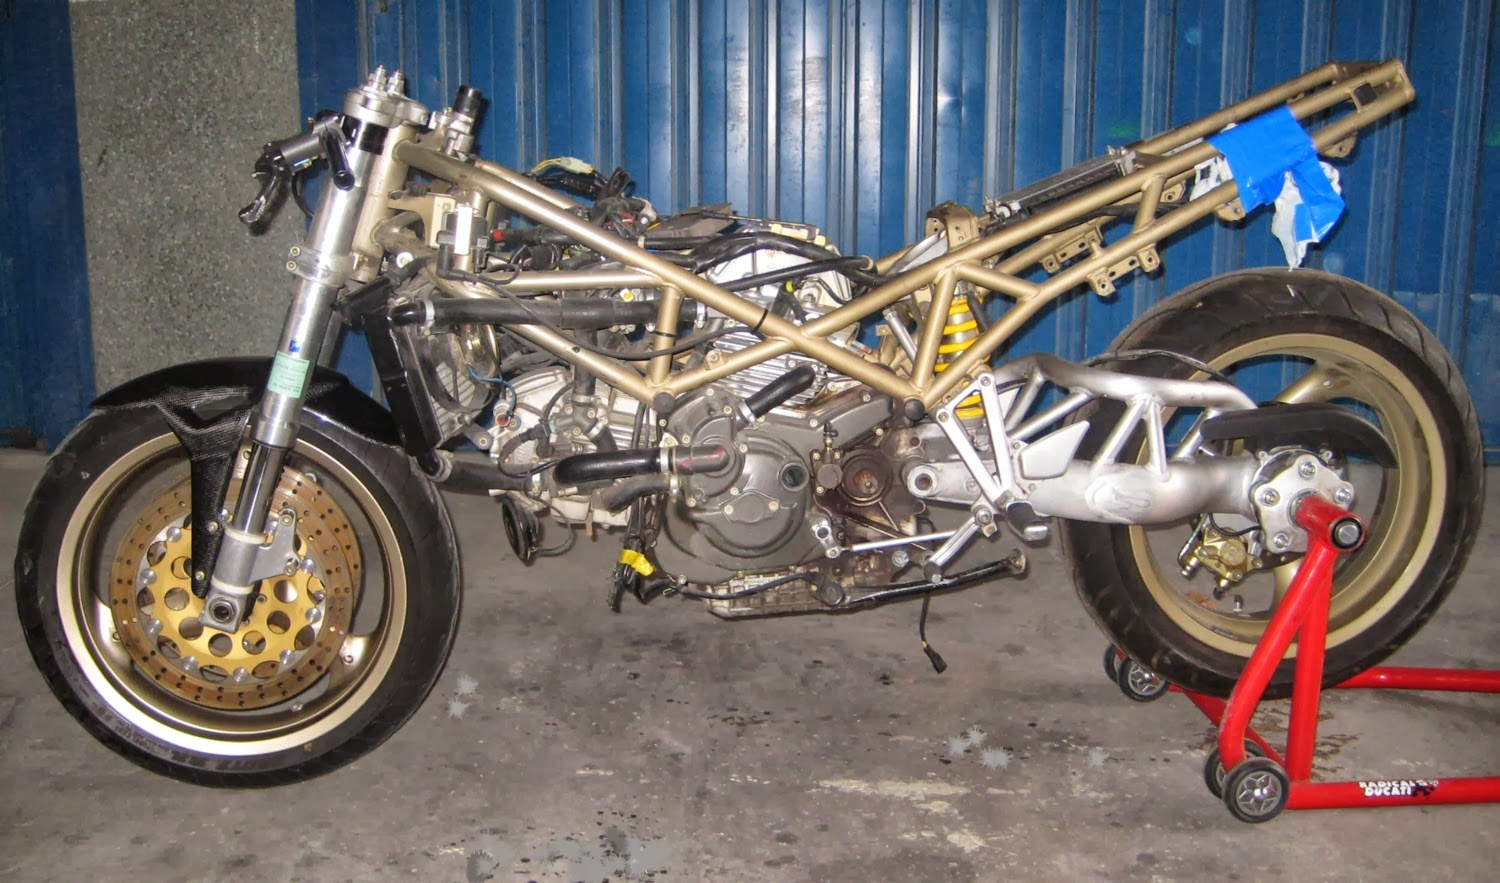 hight resolution of  first steep dismount the bike and fit the s2r single side swingarm and wheel mounting the clip ons and began the reposition of the electrical wiring and